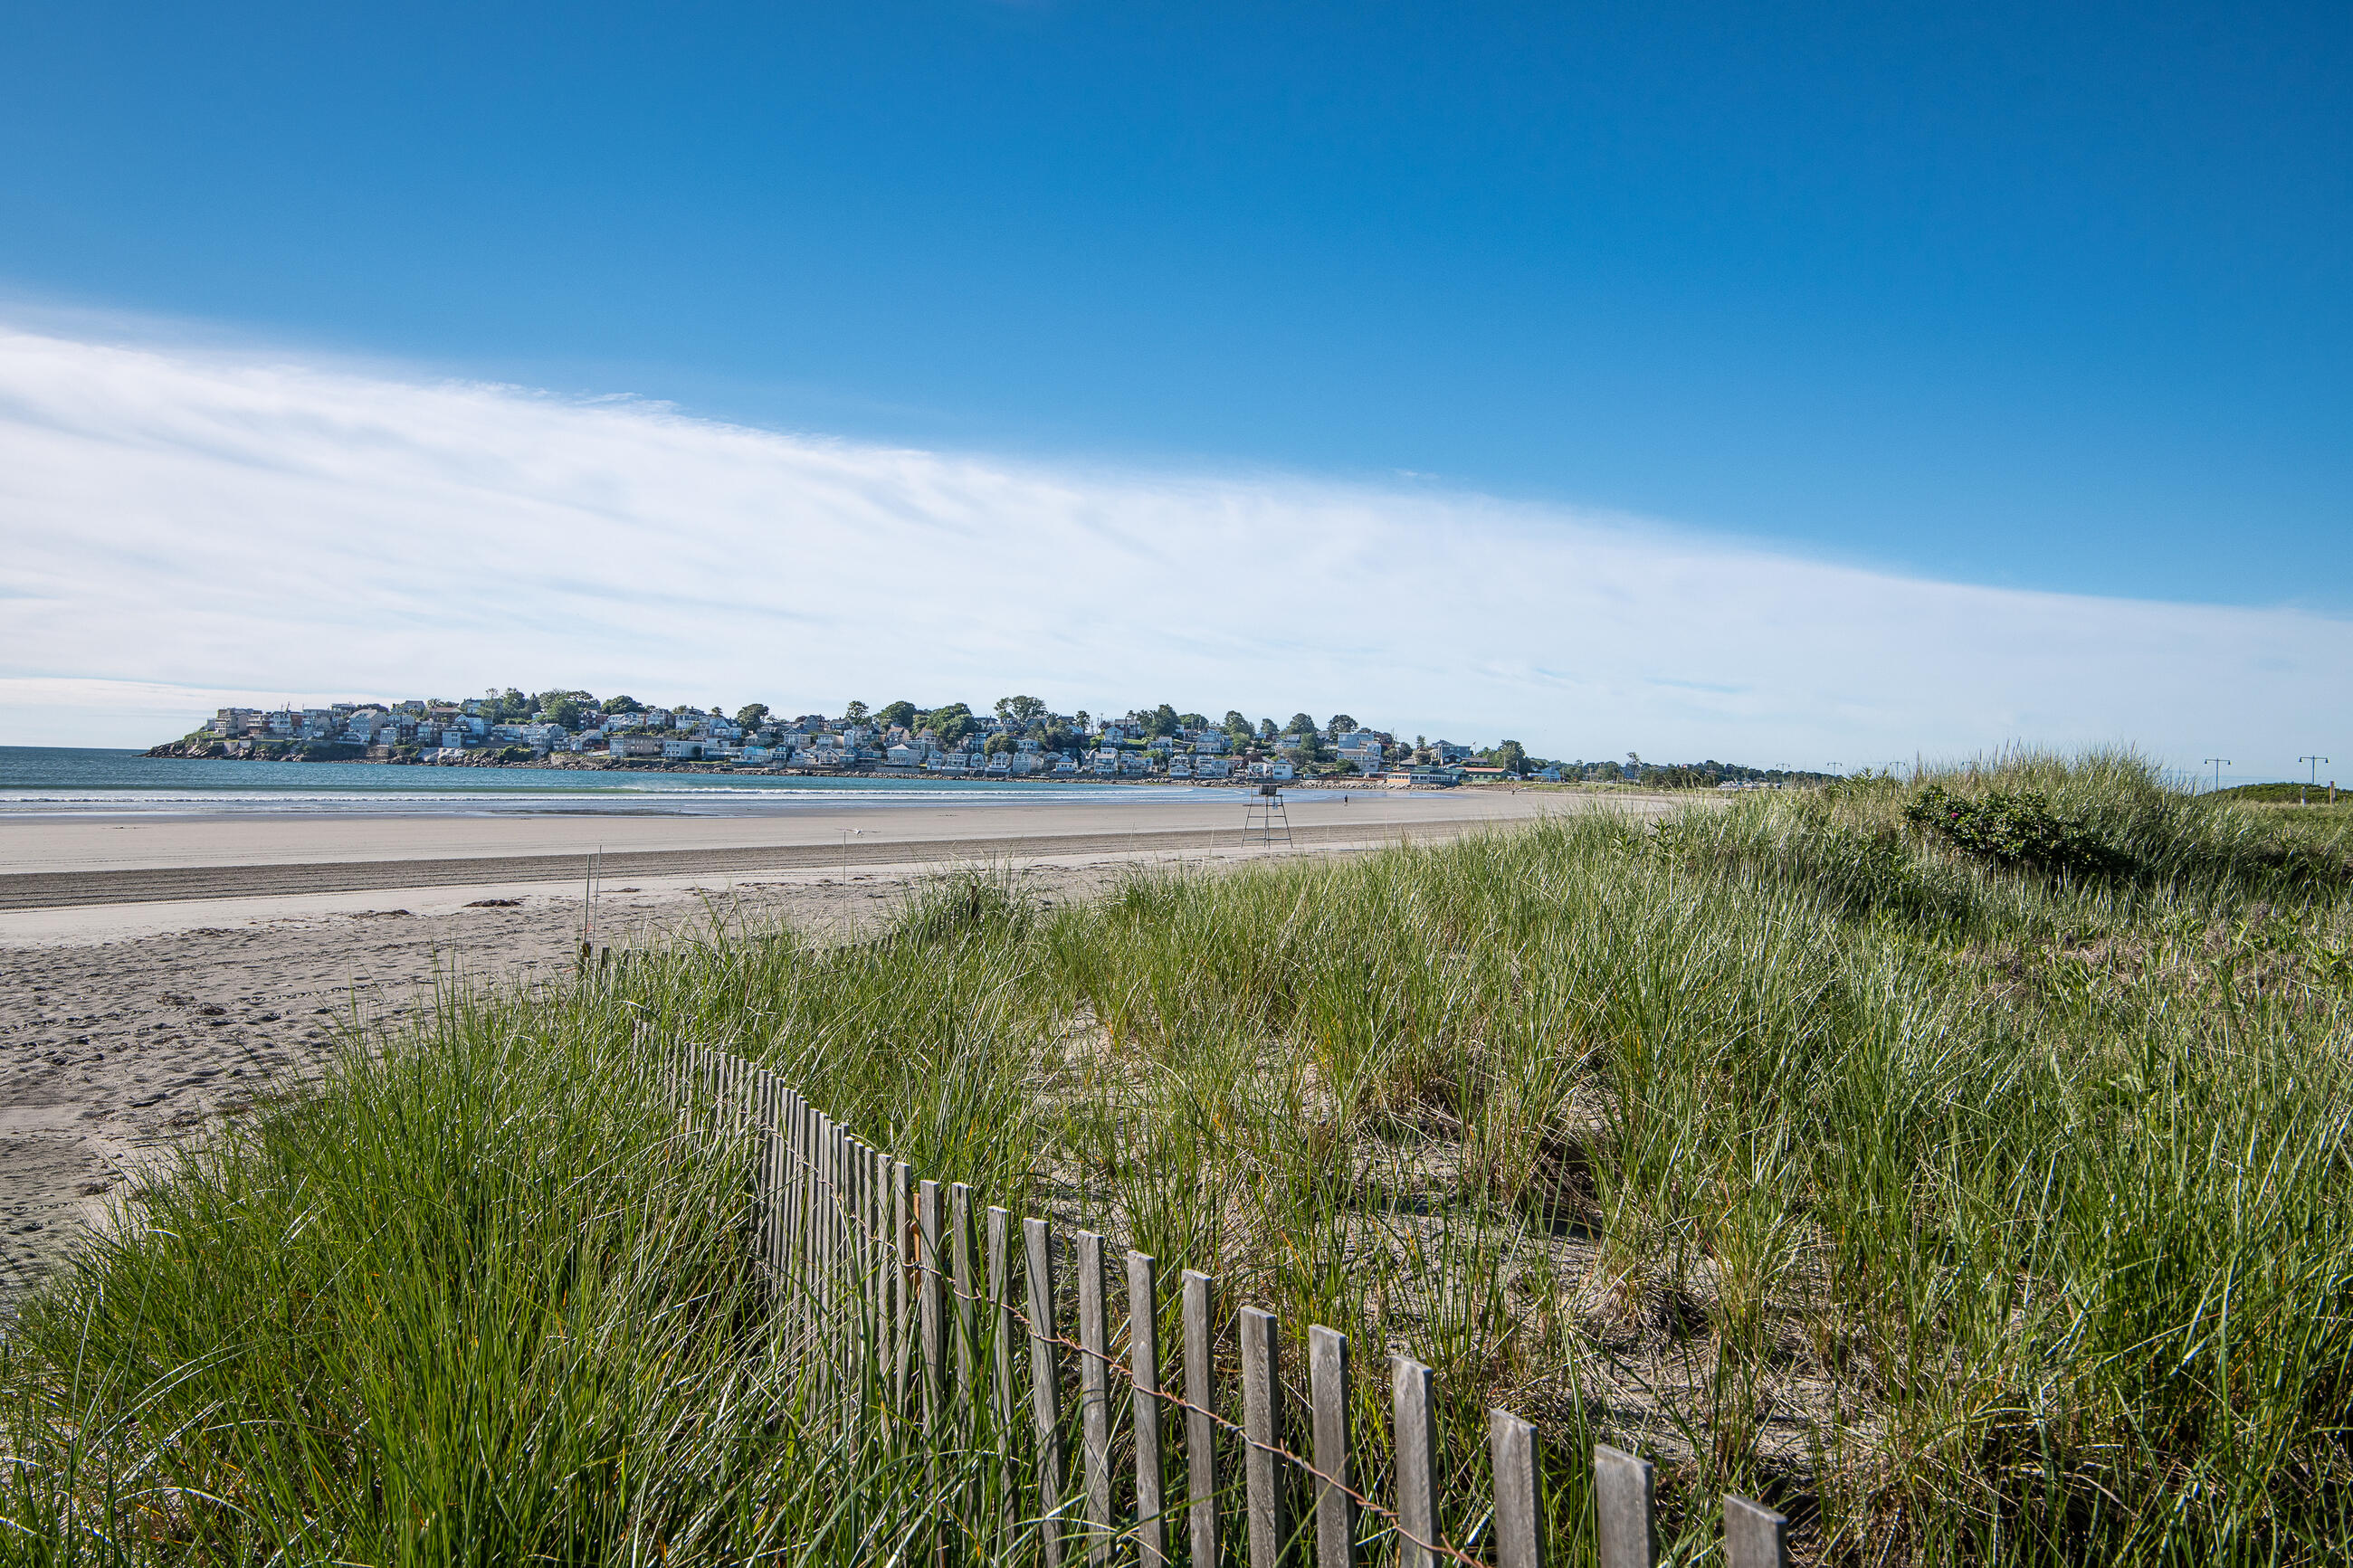 A photo of the Nahant Beach Shoreline. There's a little wooden plank fence in some grass in the foreground, and there are buildings across the water, further down the curve of the beach